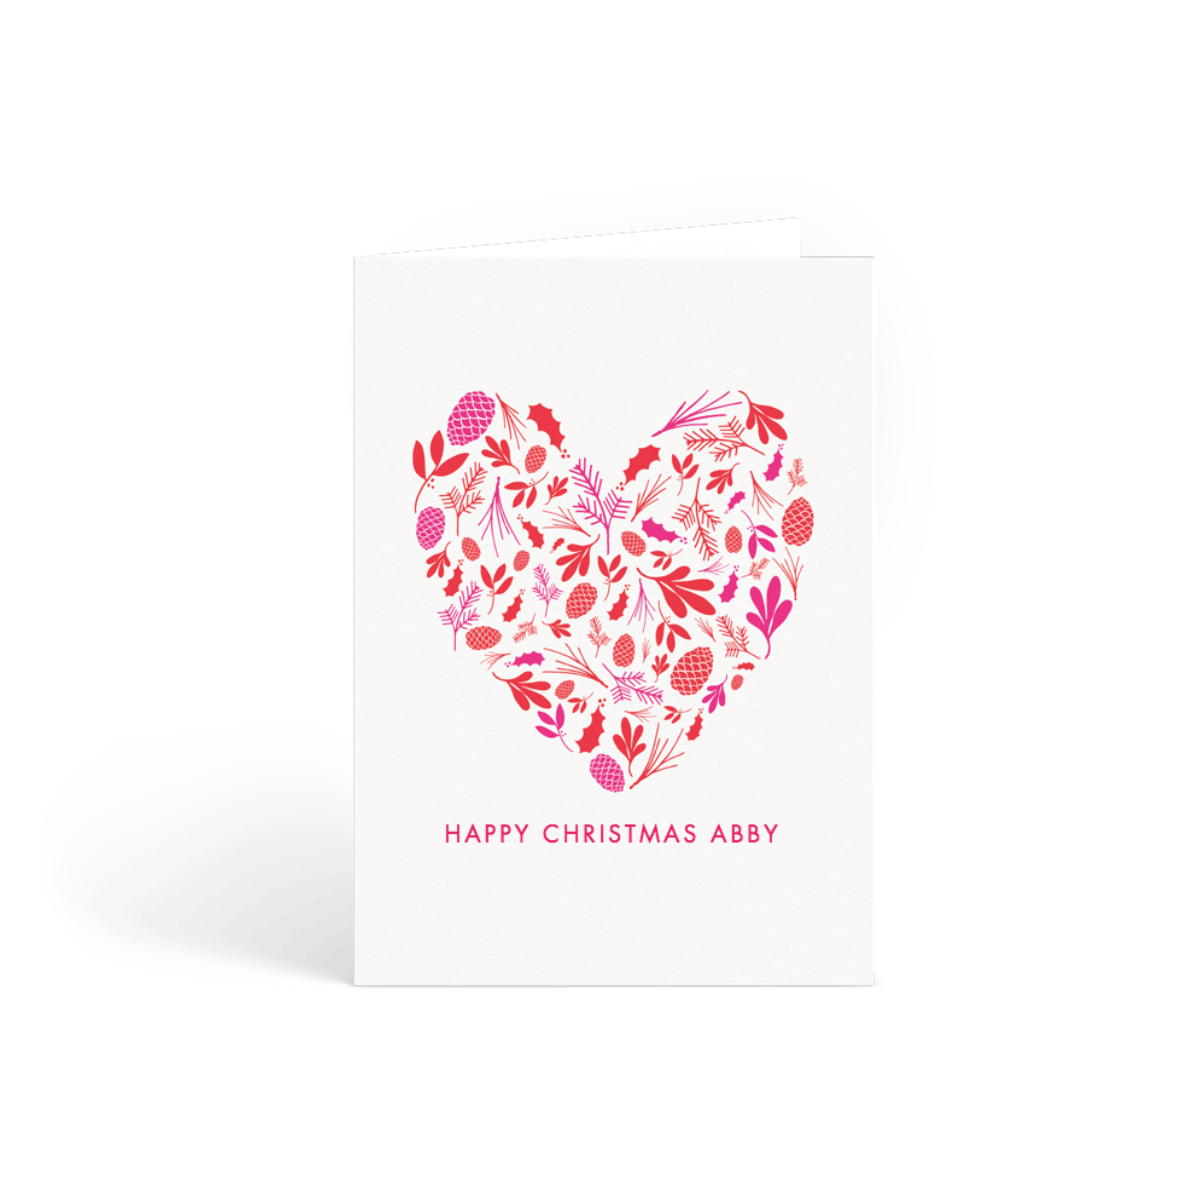 Https%3a%2f%2fwww.papier.com%2fproduct image%2f2182%2f2%2fgreenery heart 614 front 1541426688.png?ixlib=rb 1.1